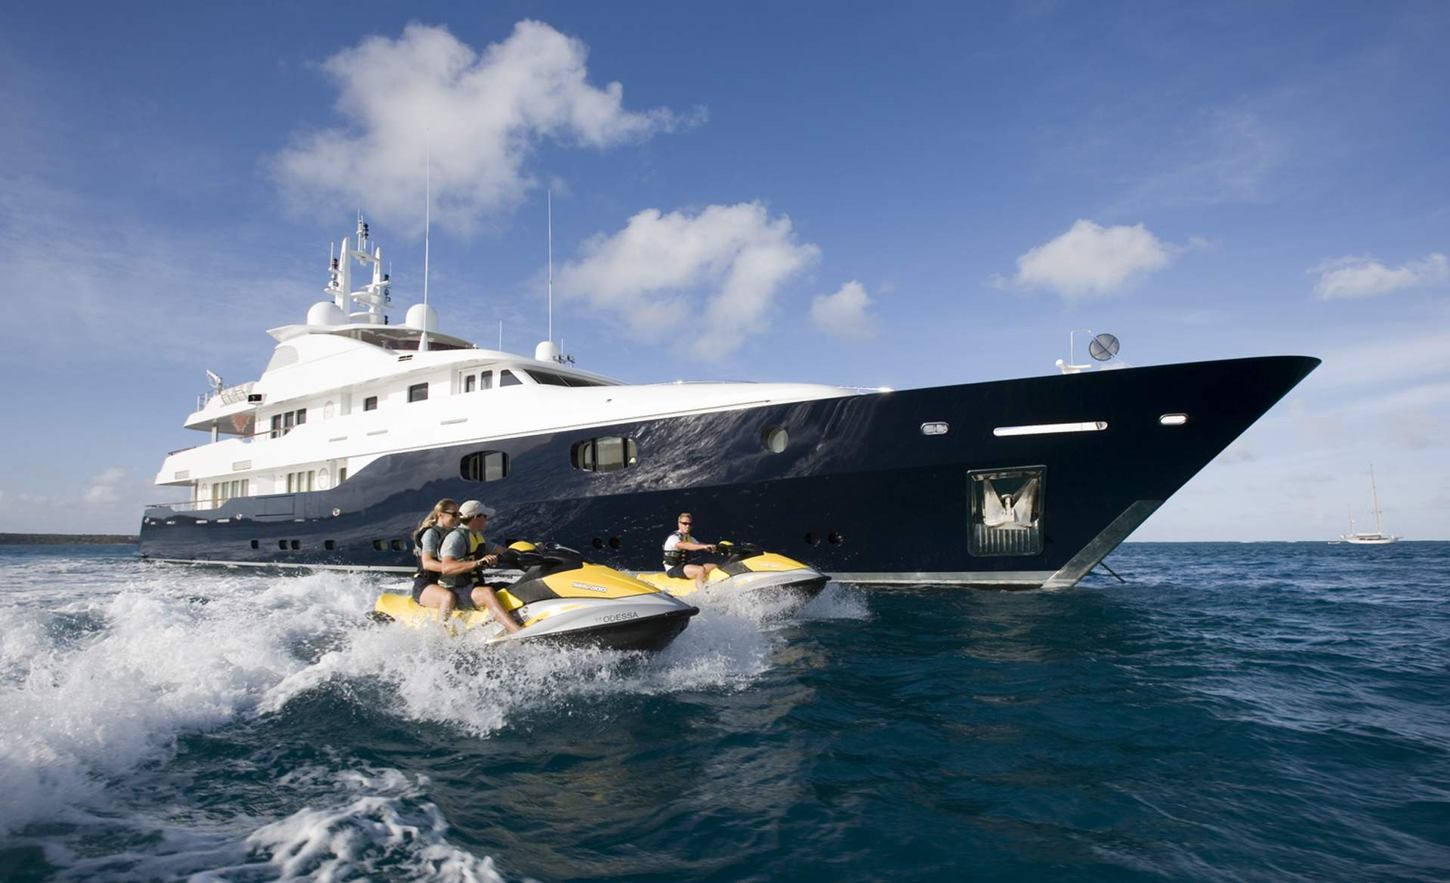 motor yacht ODESSA cruises through the water alongside jet skis on a Caribbean yacht charter